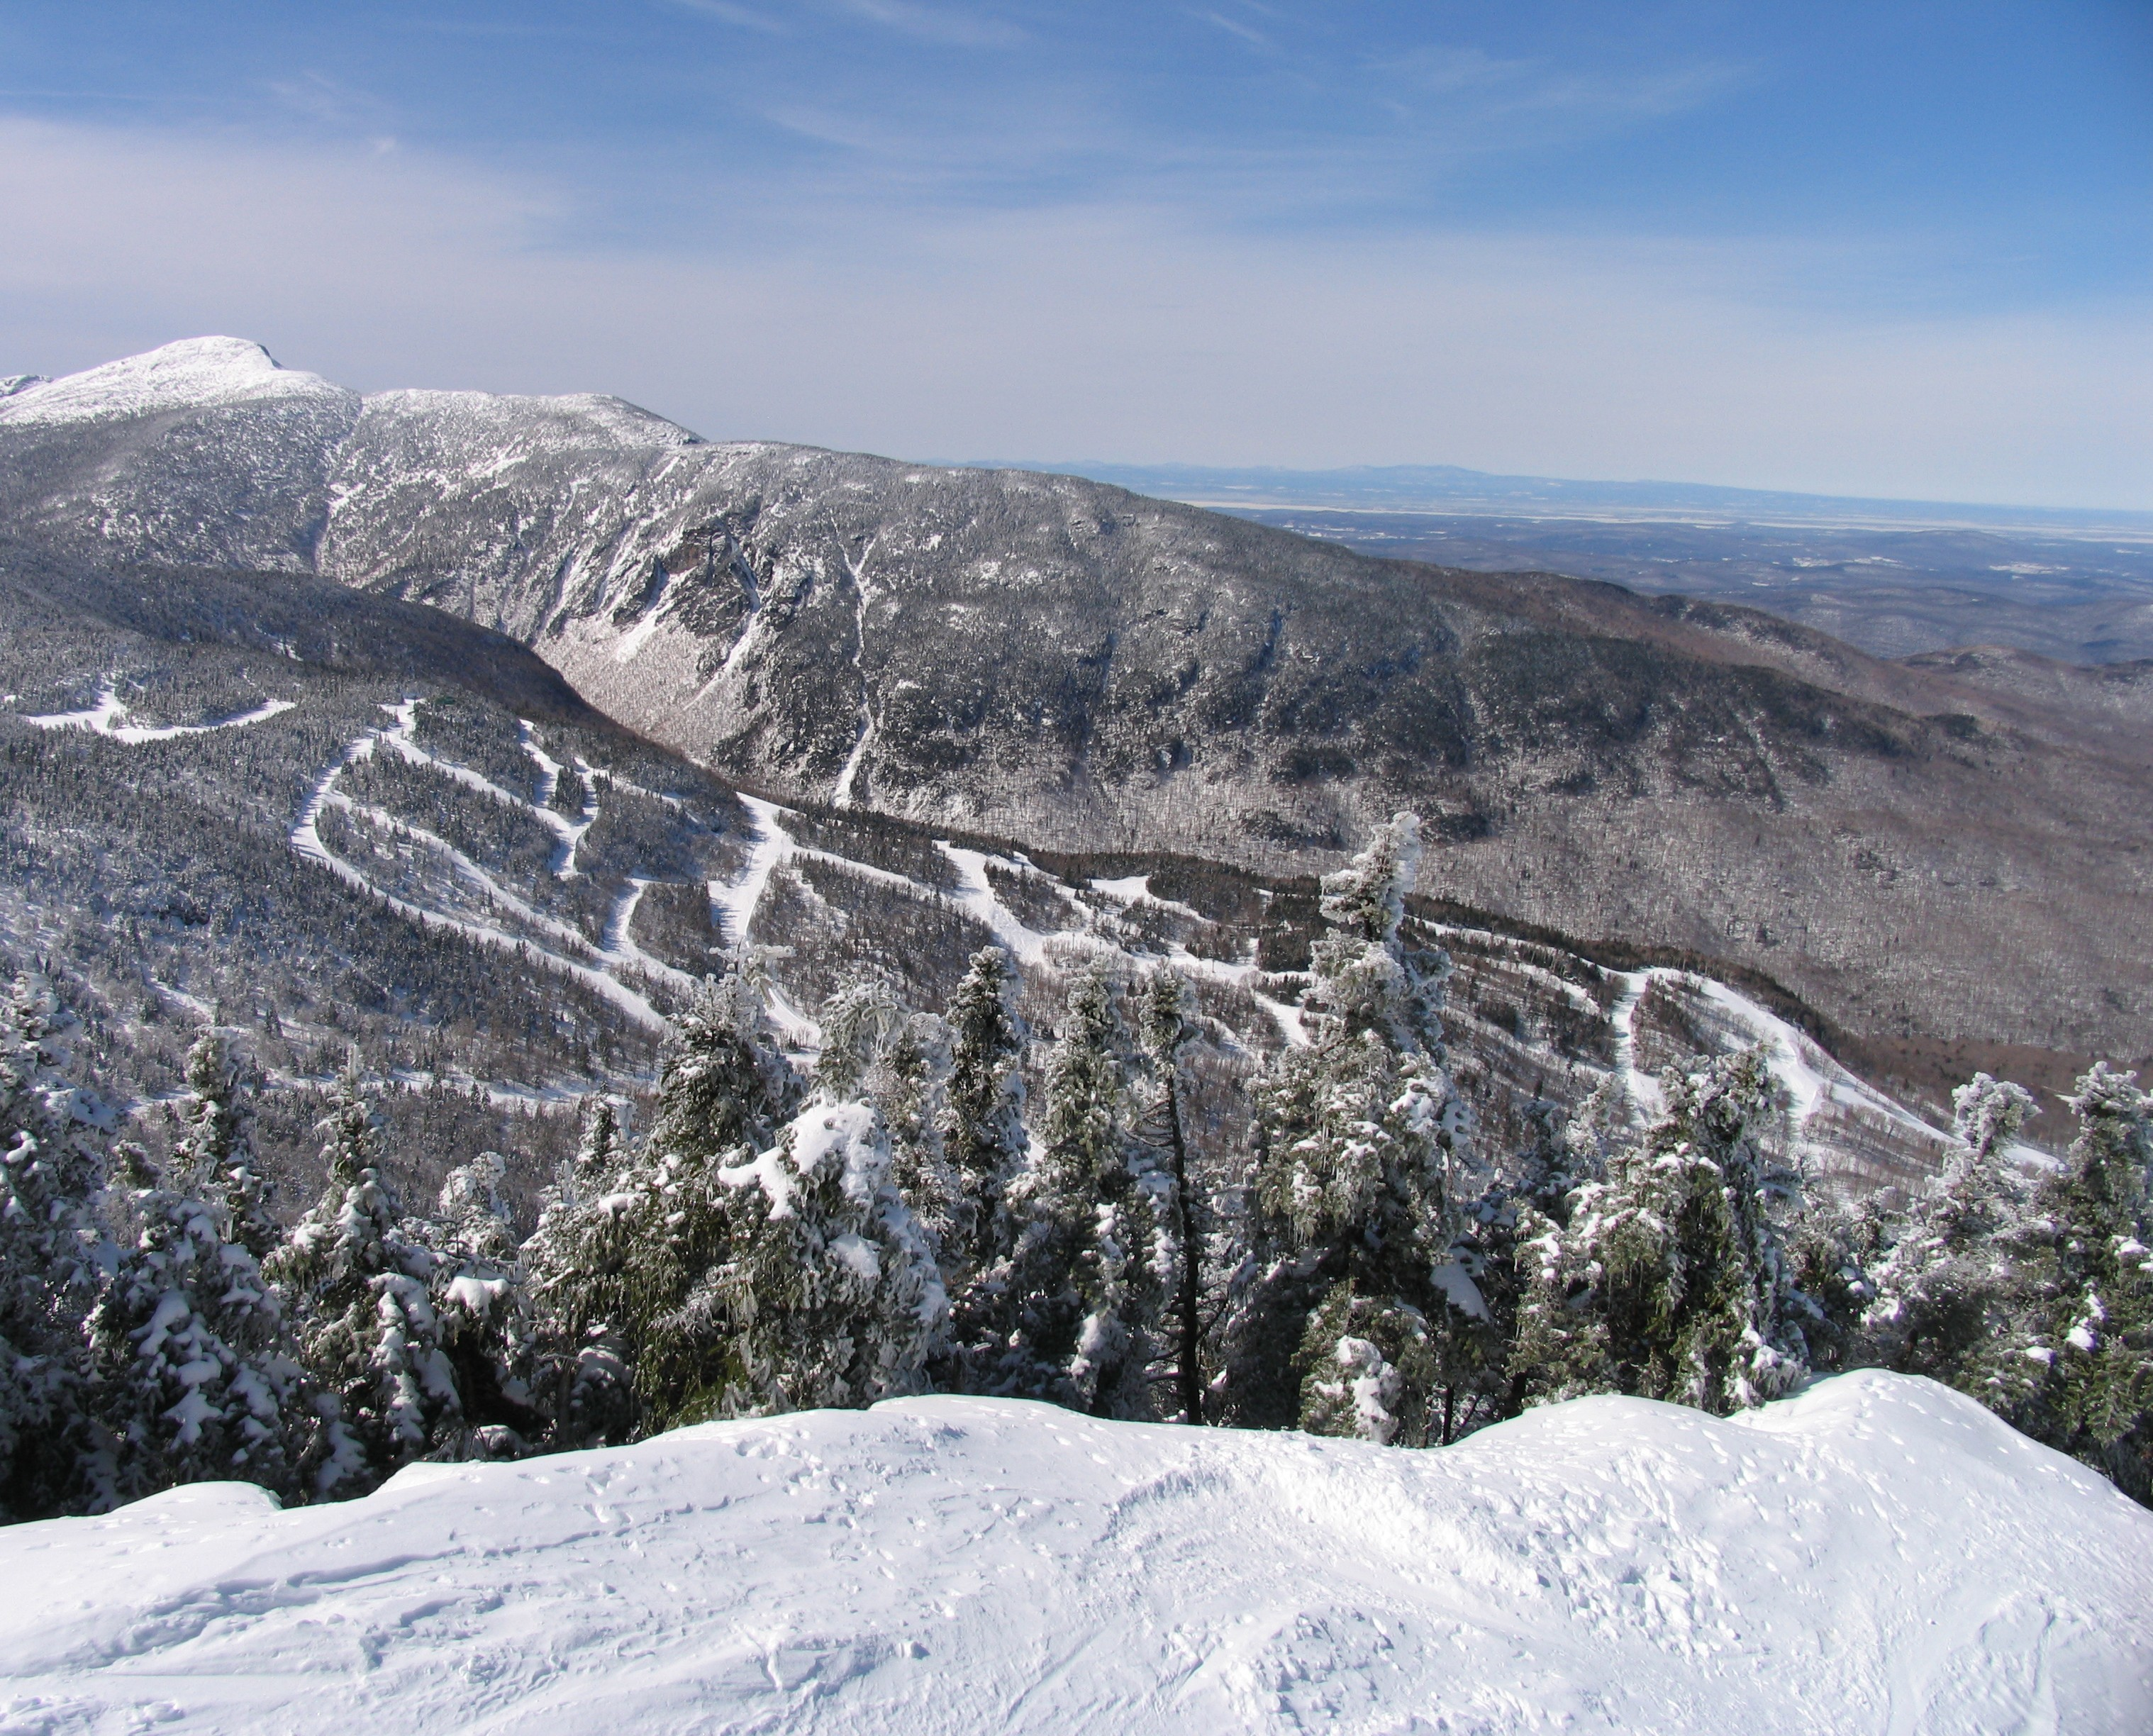 Smugglers Notch view from lift shackundefined